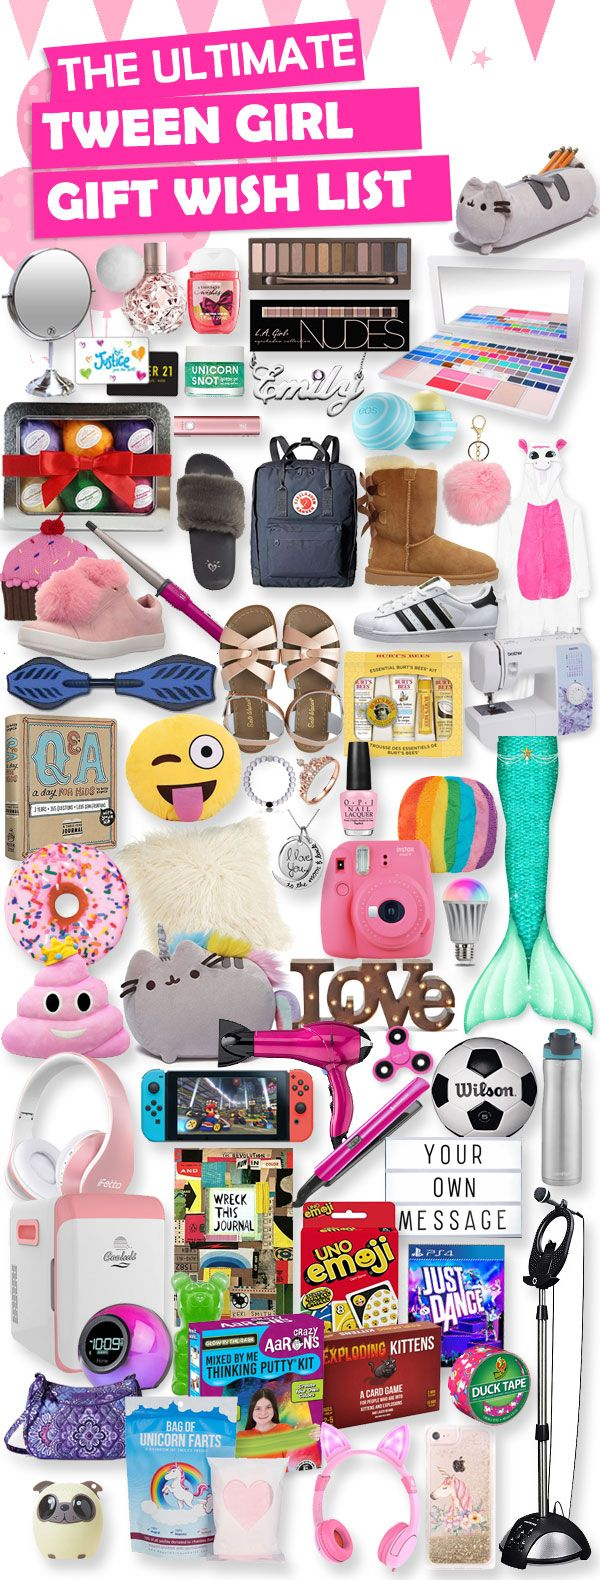 11 Best Gifts For Teen Girls Images On Pinterest  Wish -6085